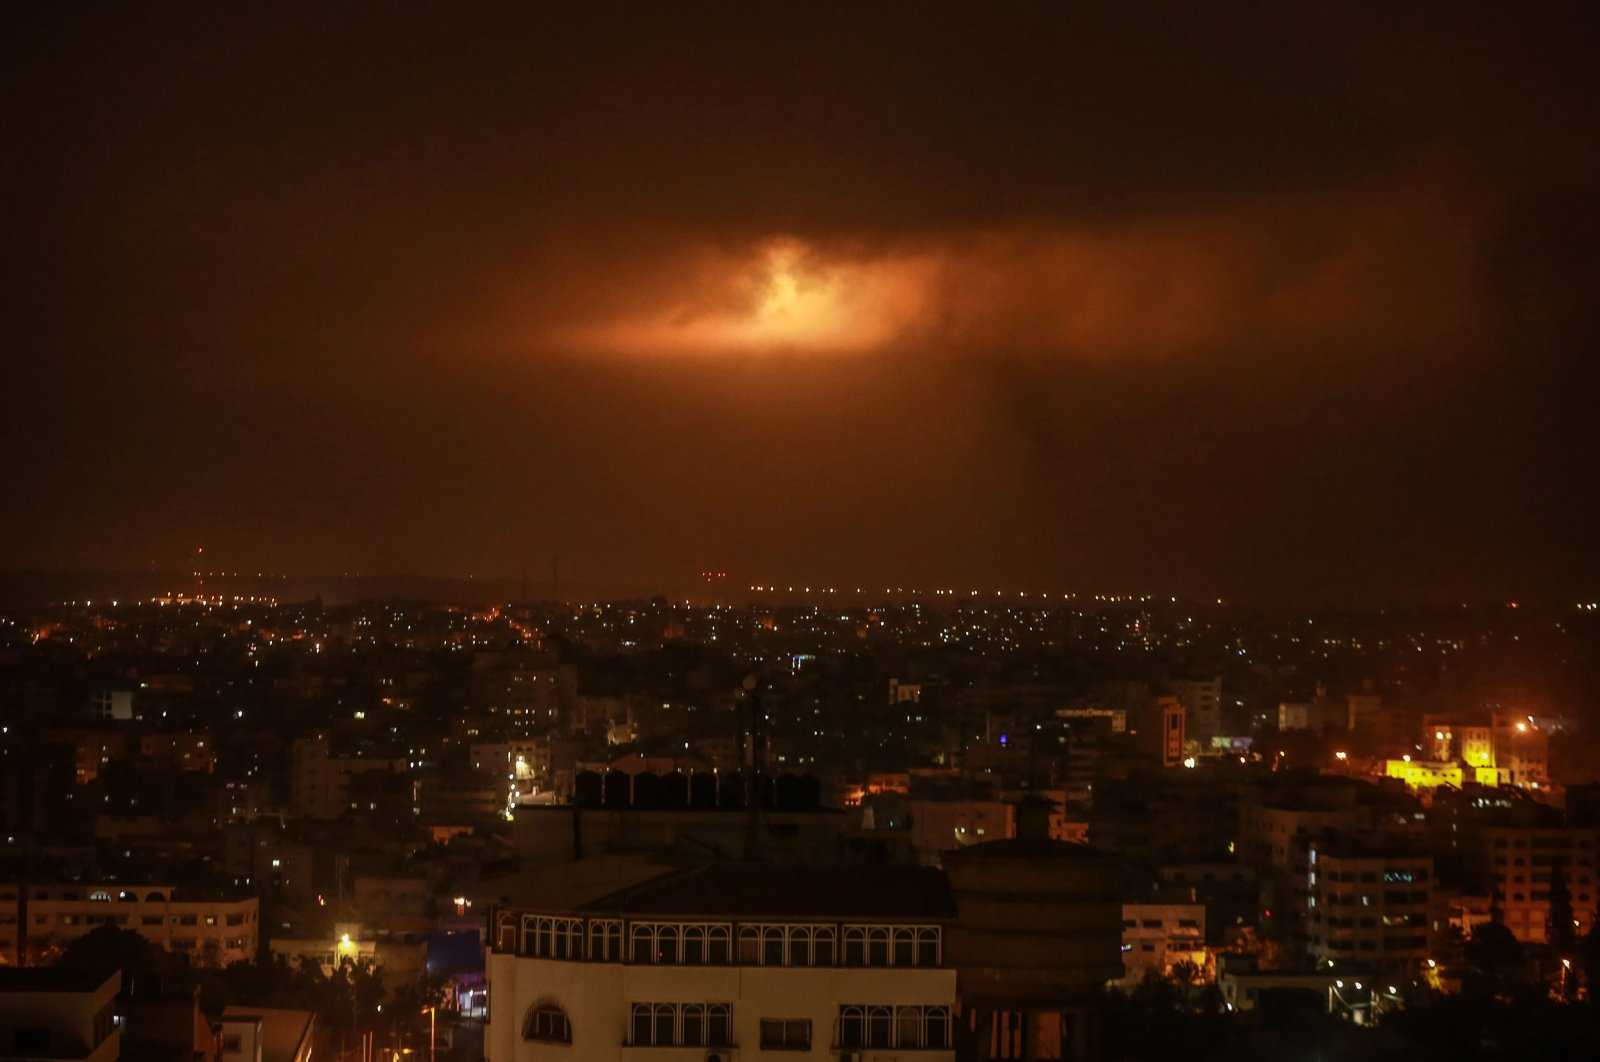 Lighting bombs fired by the Israeli army can be seen through the clouds after the Palestinian protests in Gaza City, Palestine, April 24, 2021. (Photo  by Getty Images)